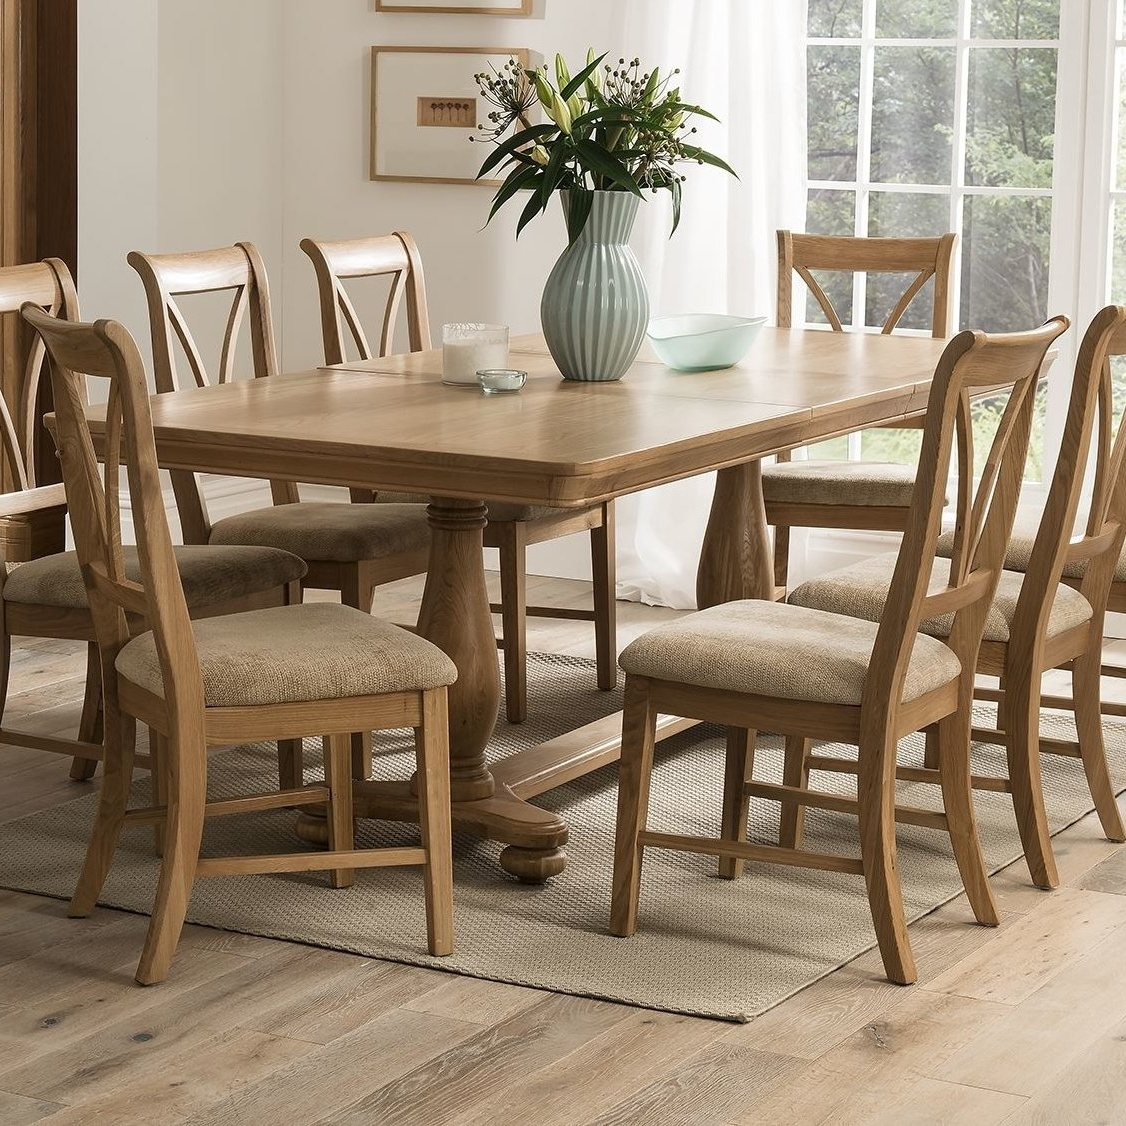 Newest Extendable Dining Tables With 6 Chairs For Homestead Living Rowan Extendable Dining Table And 6 Chairs (View 14 of 25)